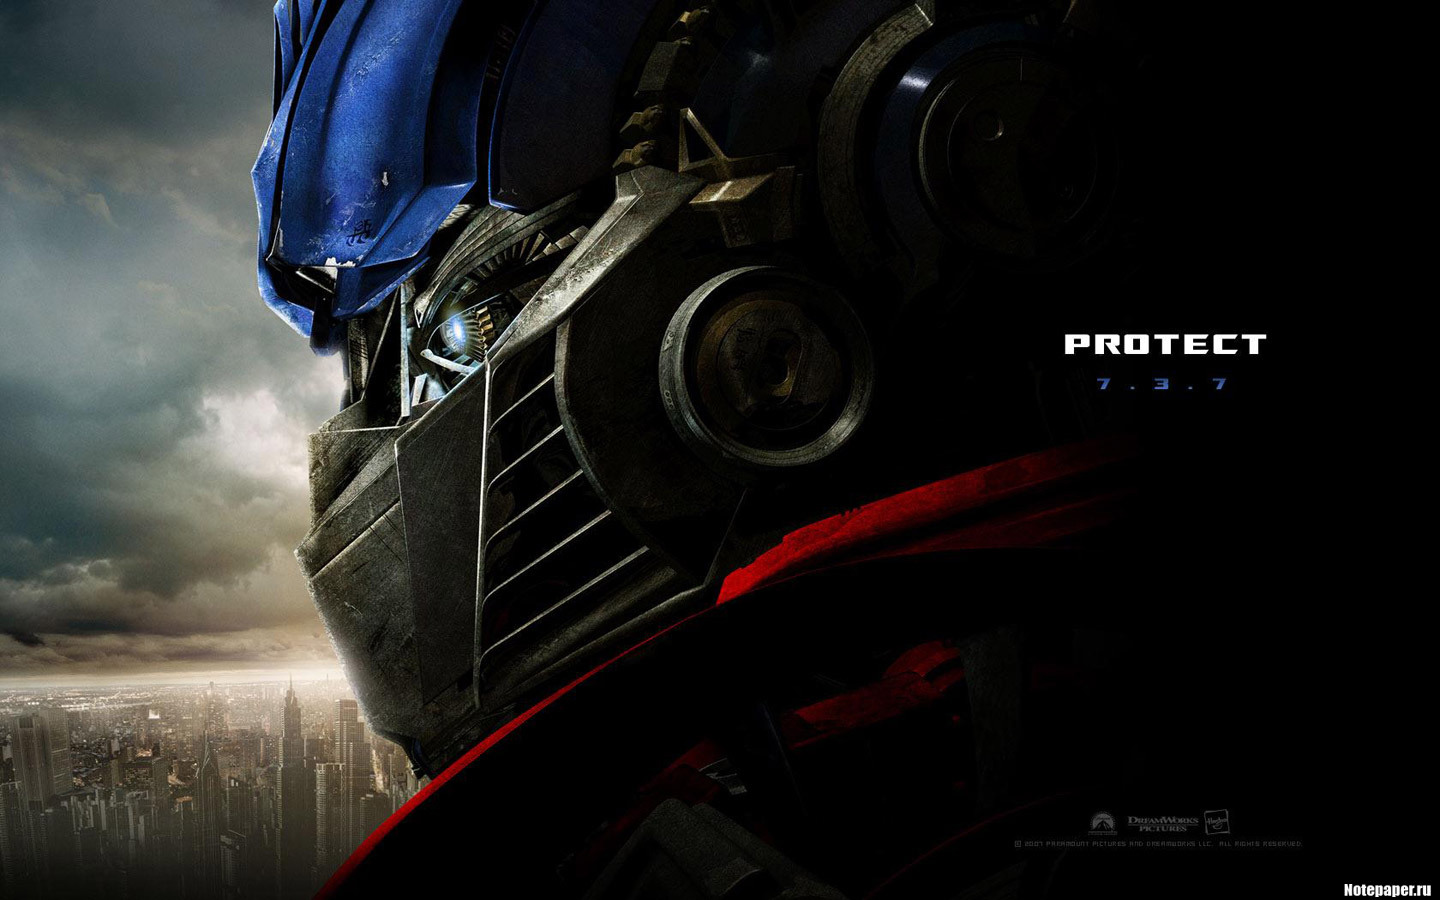 20559 download wallpaper Cinema, Transformers screensavers and pictures for free